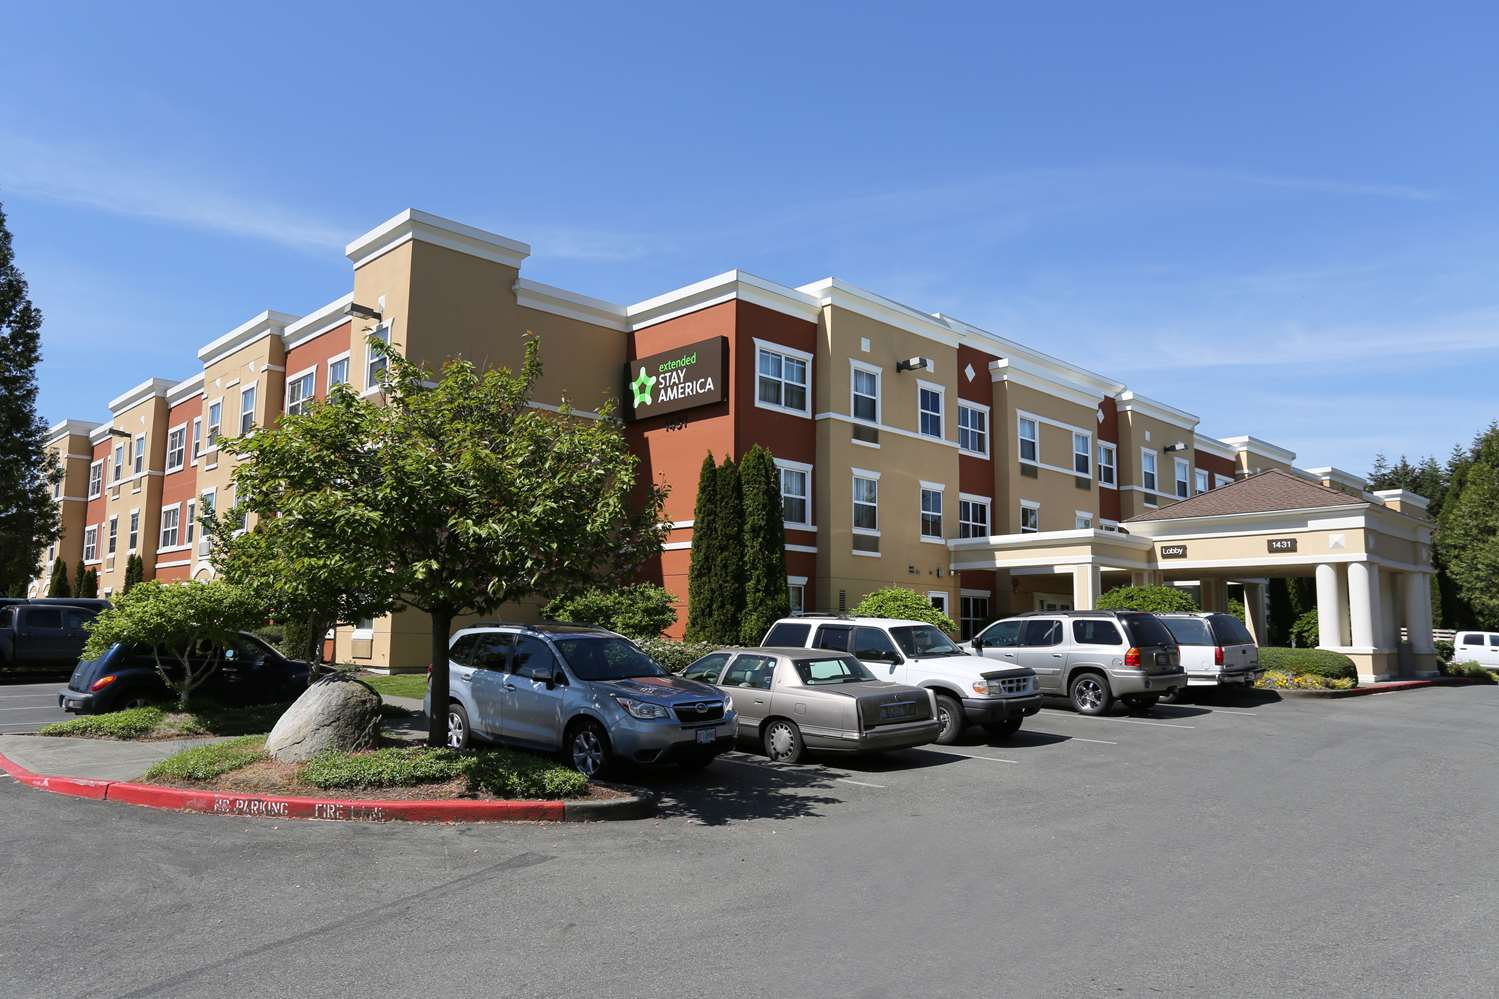 Extended Stay America Hotel Silverlake Everett